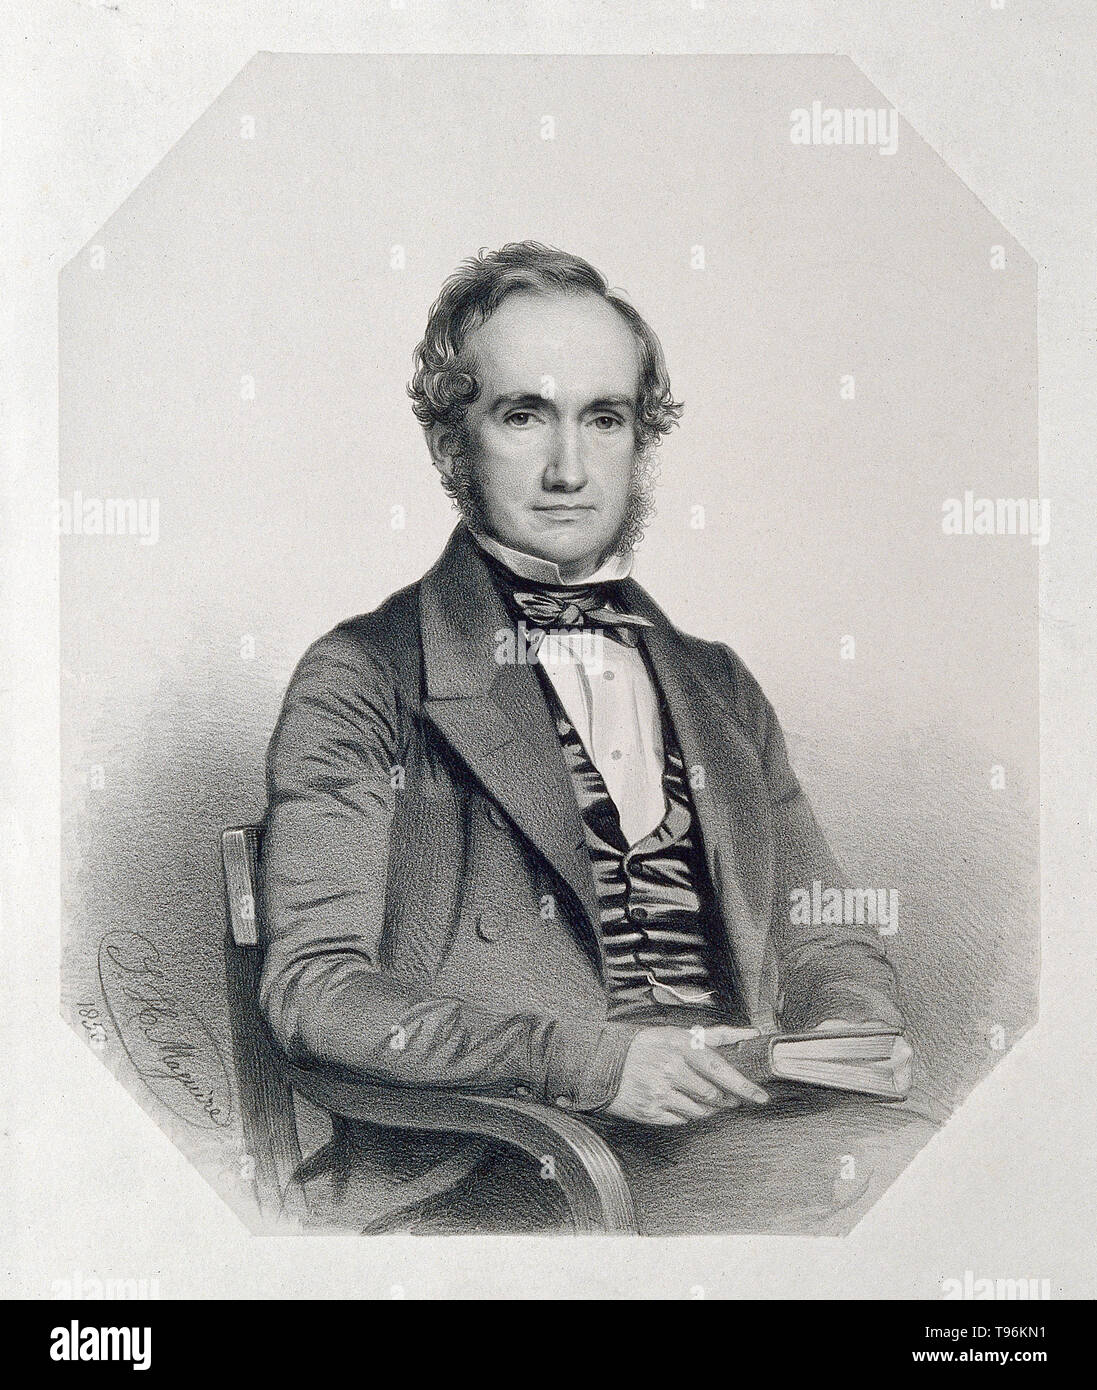 William Henry Harvey (February 5, 1811 - May 15, 1866) was an Irish botanist and phycologist. Harvey was an authority on algae and bryophytes (mosses). In 1844 Harvey became curator of the Trinity College Herbarium and in 1848 Professor of Botany of the Royal Dublin Society. In 1853 he made a 3 year voyage, visiting South Africa, Ceylon, Australia, New Zealand, Tonga, Fiji, and Chile. On his return he published further important books dealing with the botany of North America and South Africa and in 1858 was appointed Professor of Botany at Trinity College, Dublin. As a result of the publicatio - Stock Image